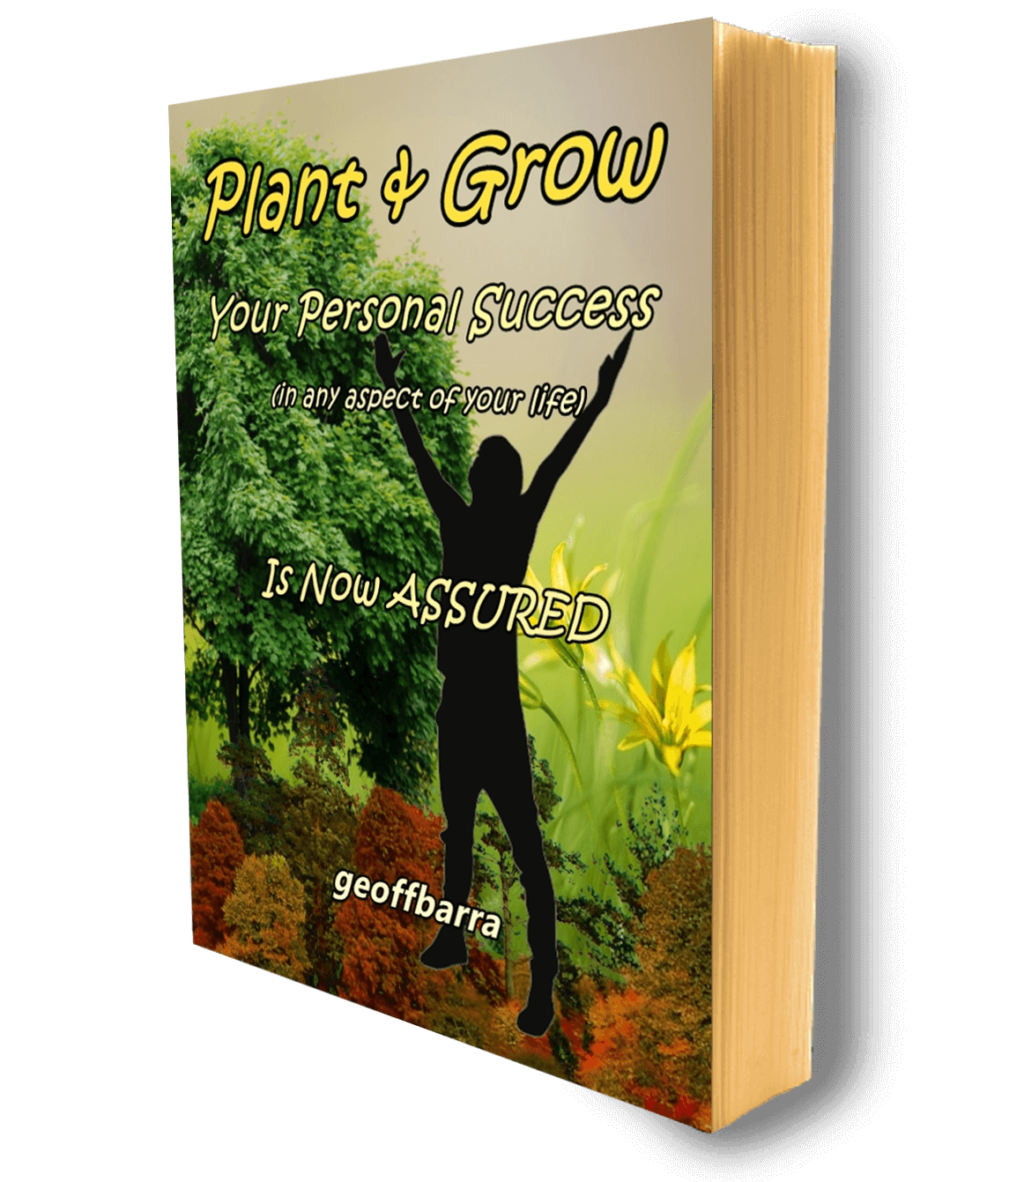 plany and grow your personal success book